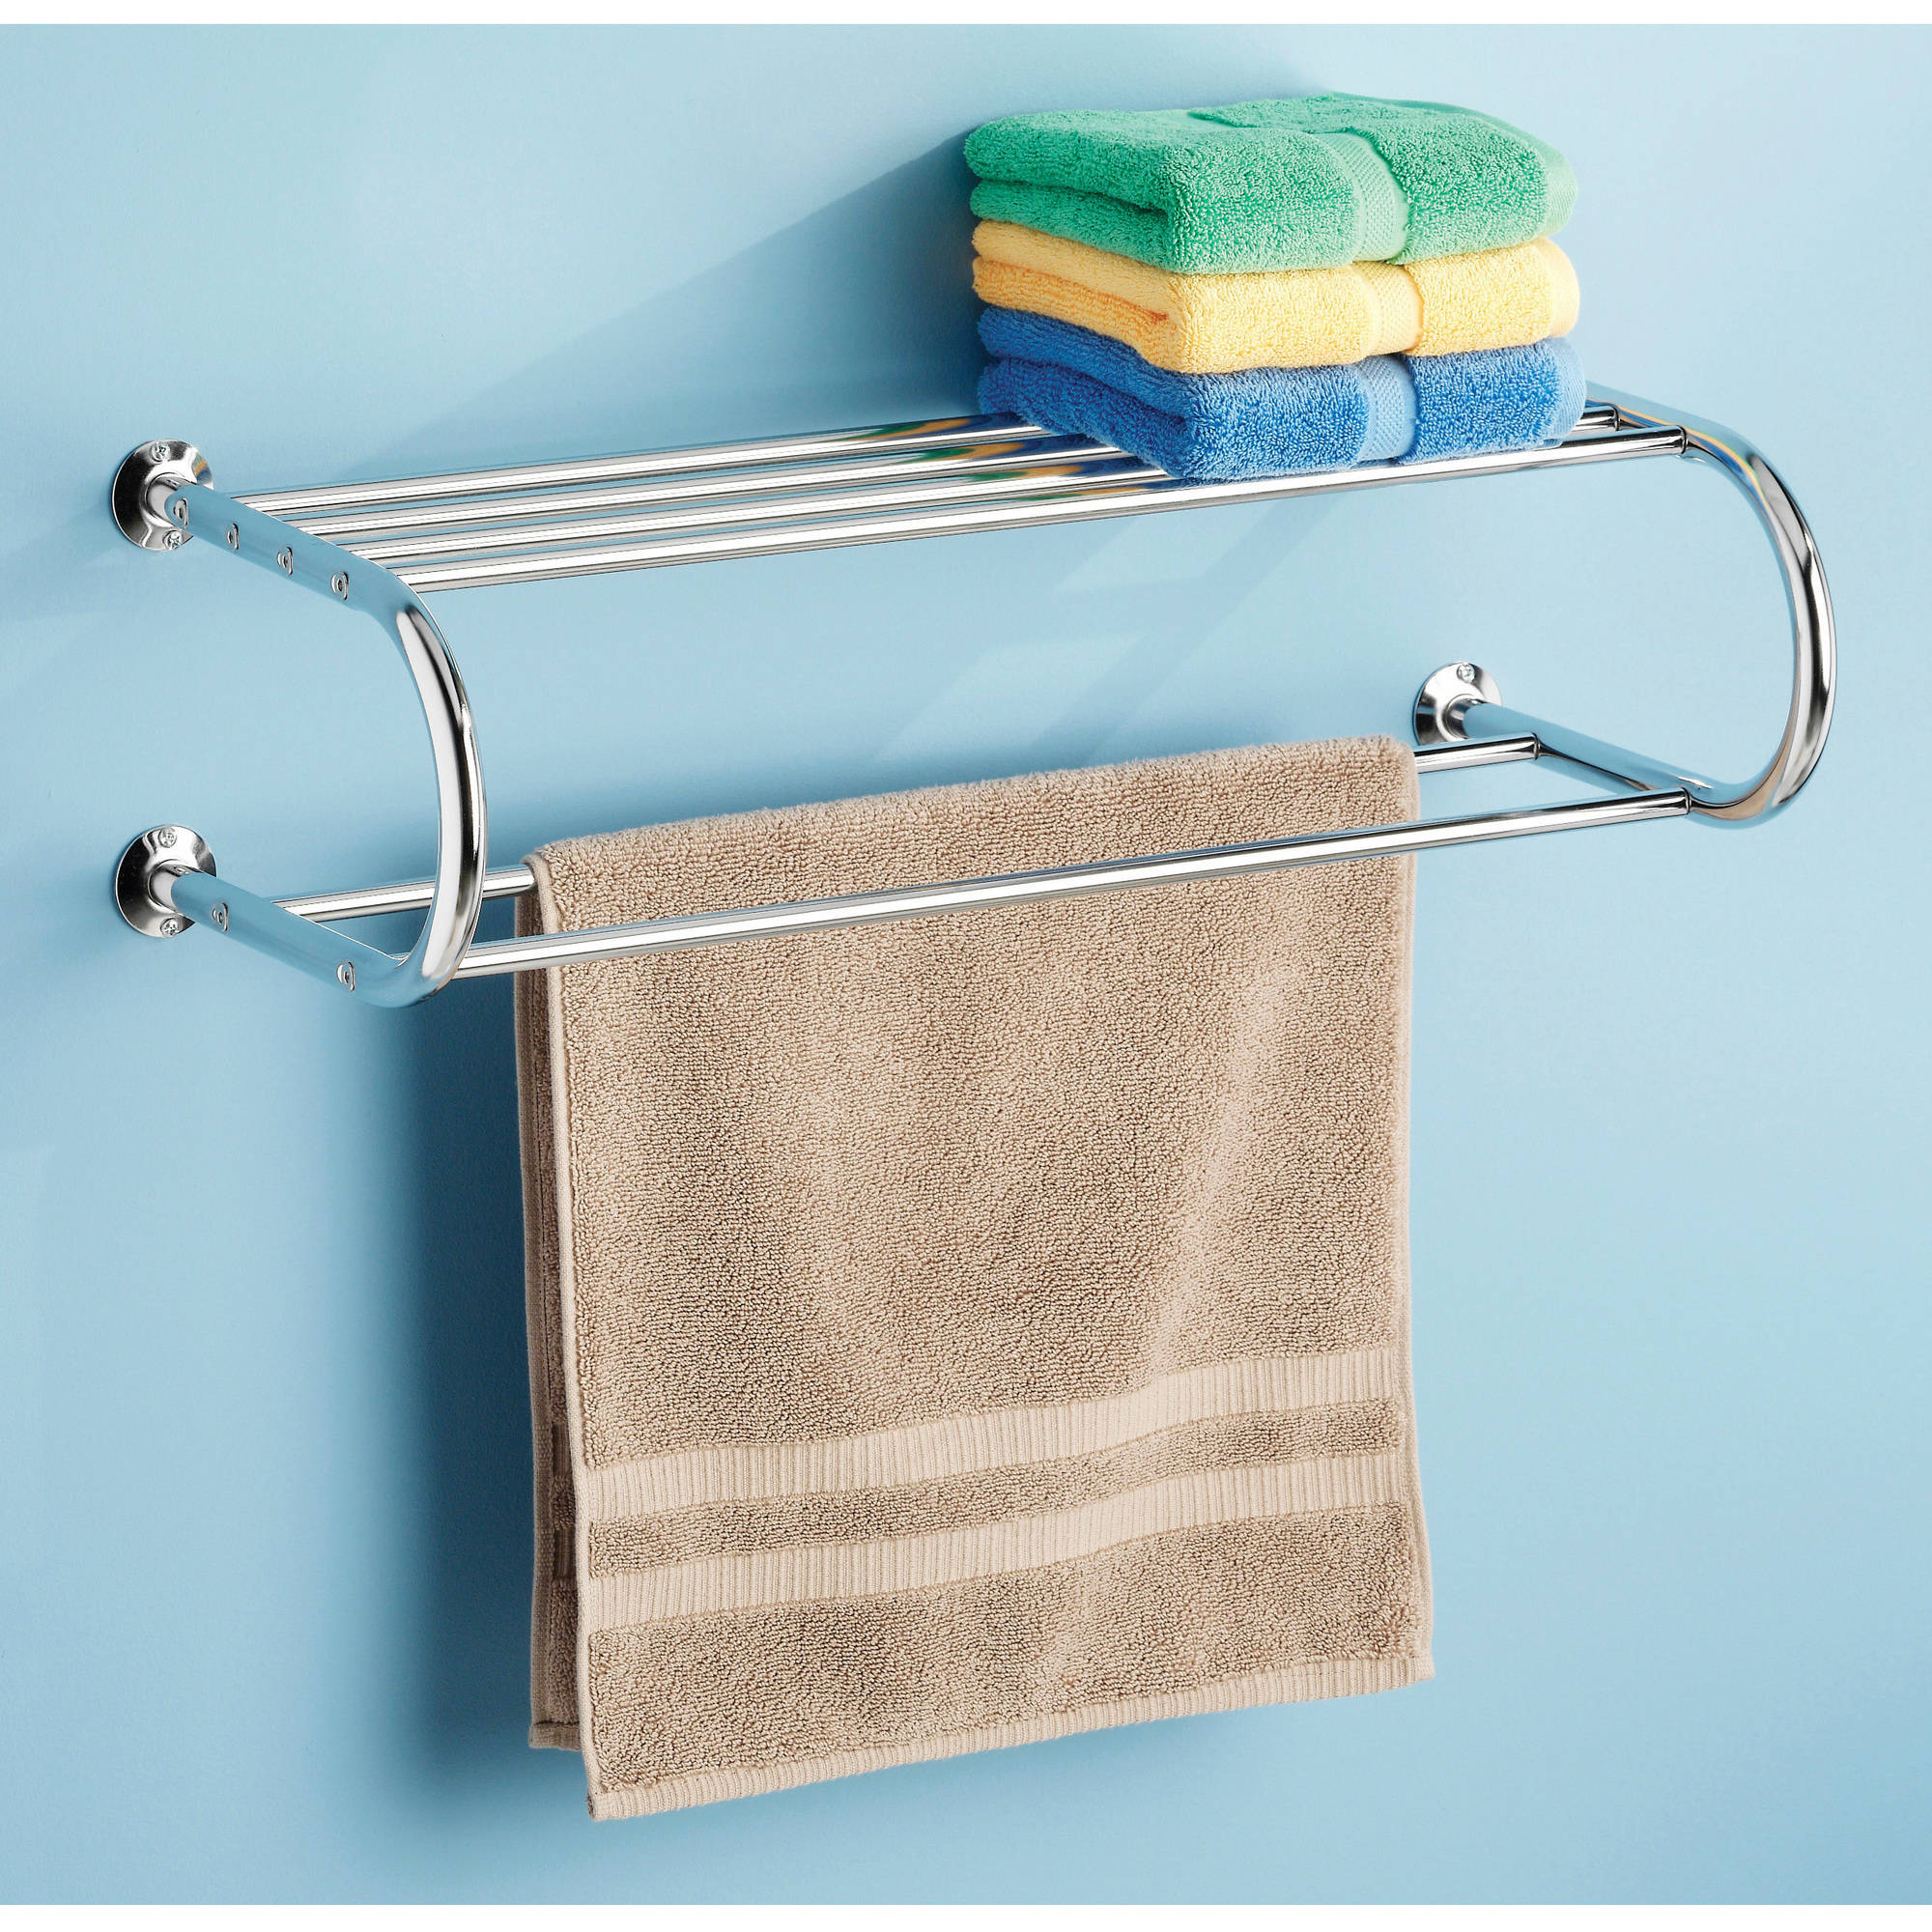 Whitmor Shelf and Towel Rack Chrome - Walmart.com